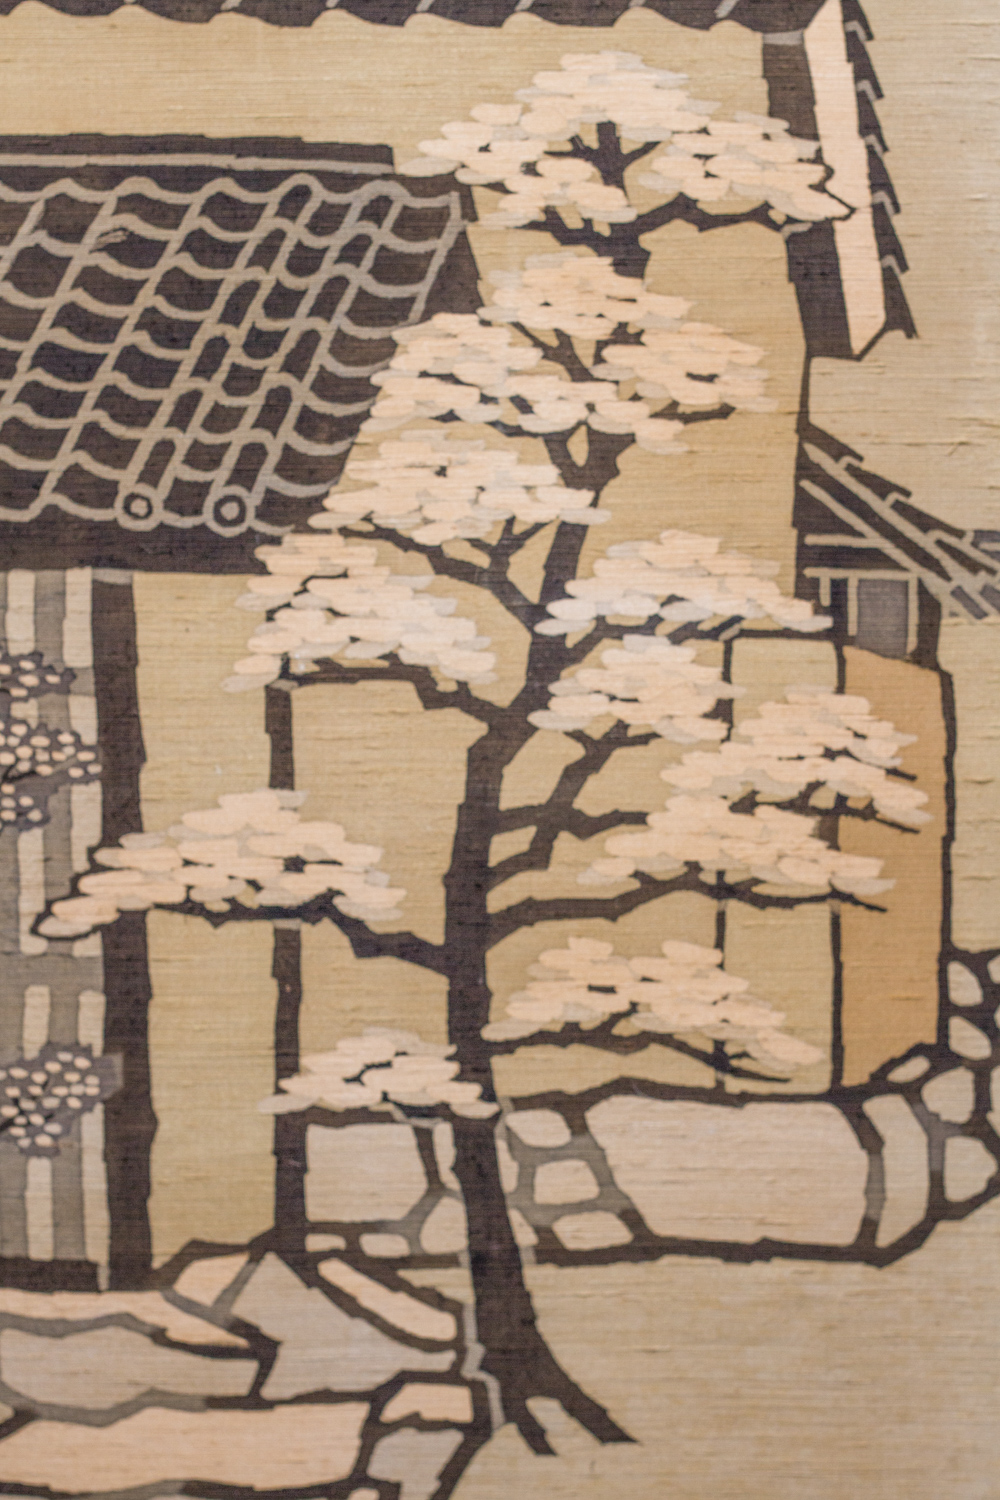 Japanese Two Panel Screen: Country Town Street Scene